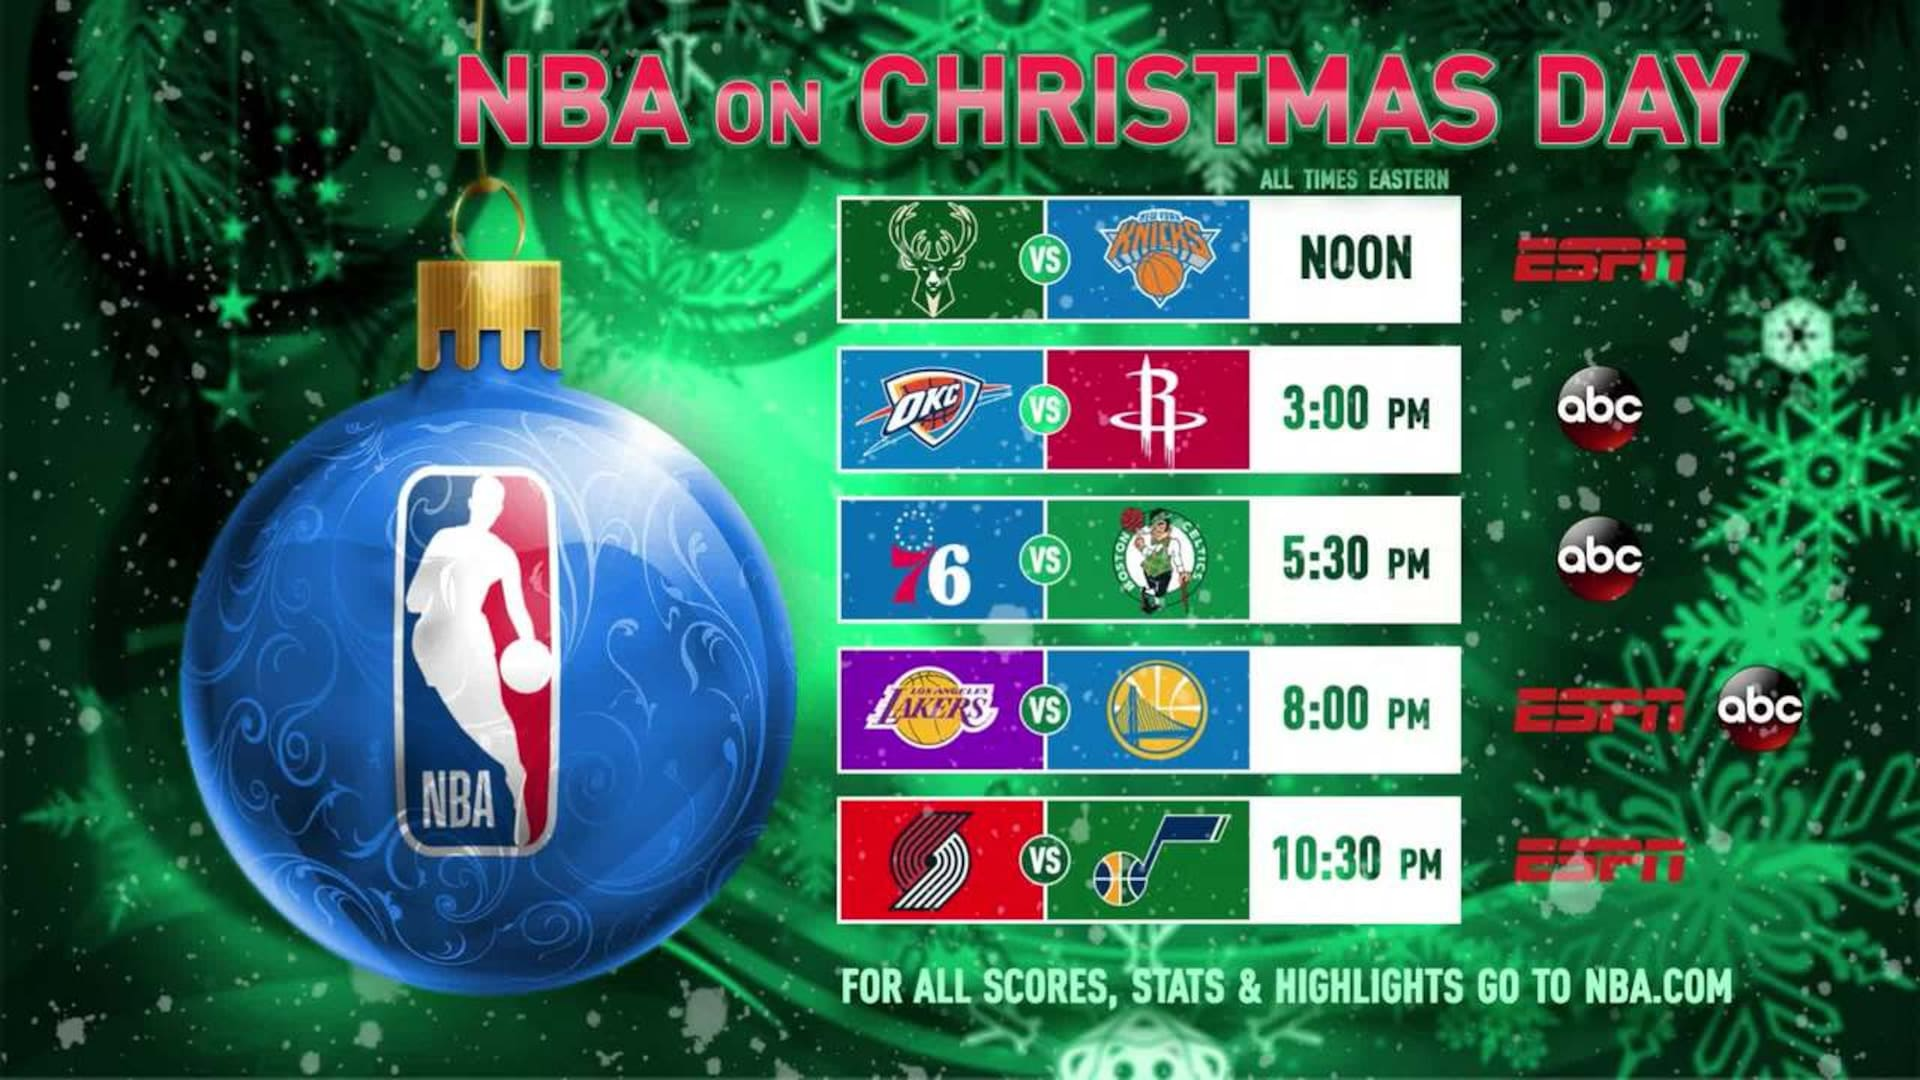 Nba Christmas Day Schedule.Reasons To Watch Nba On Christmas Day Nba Com